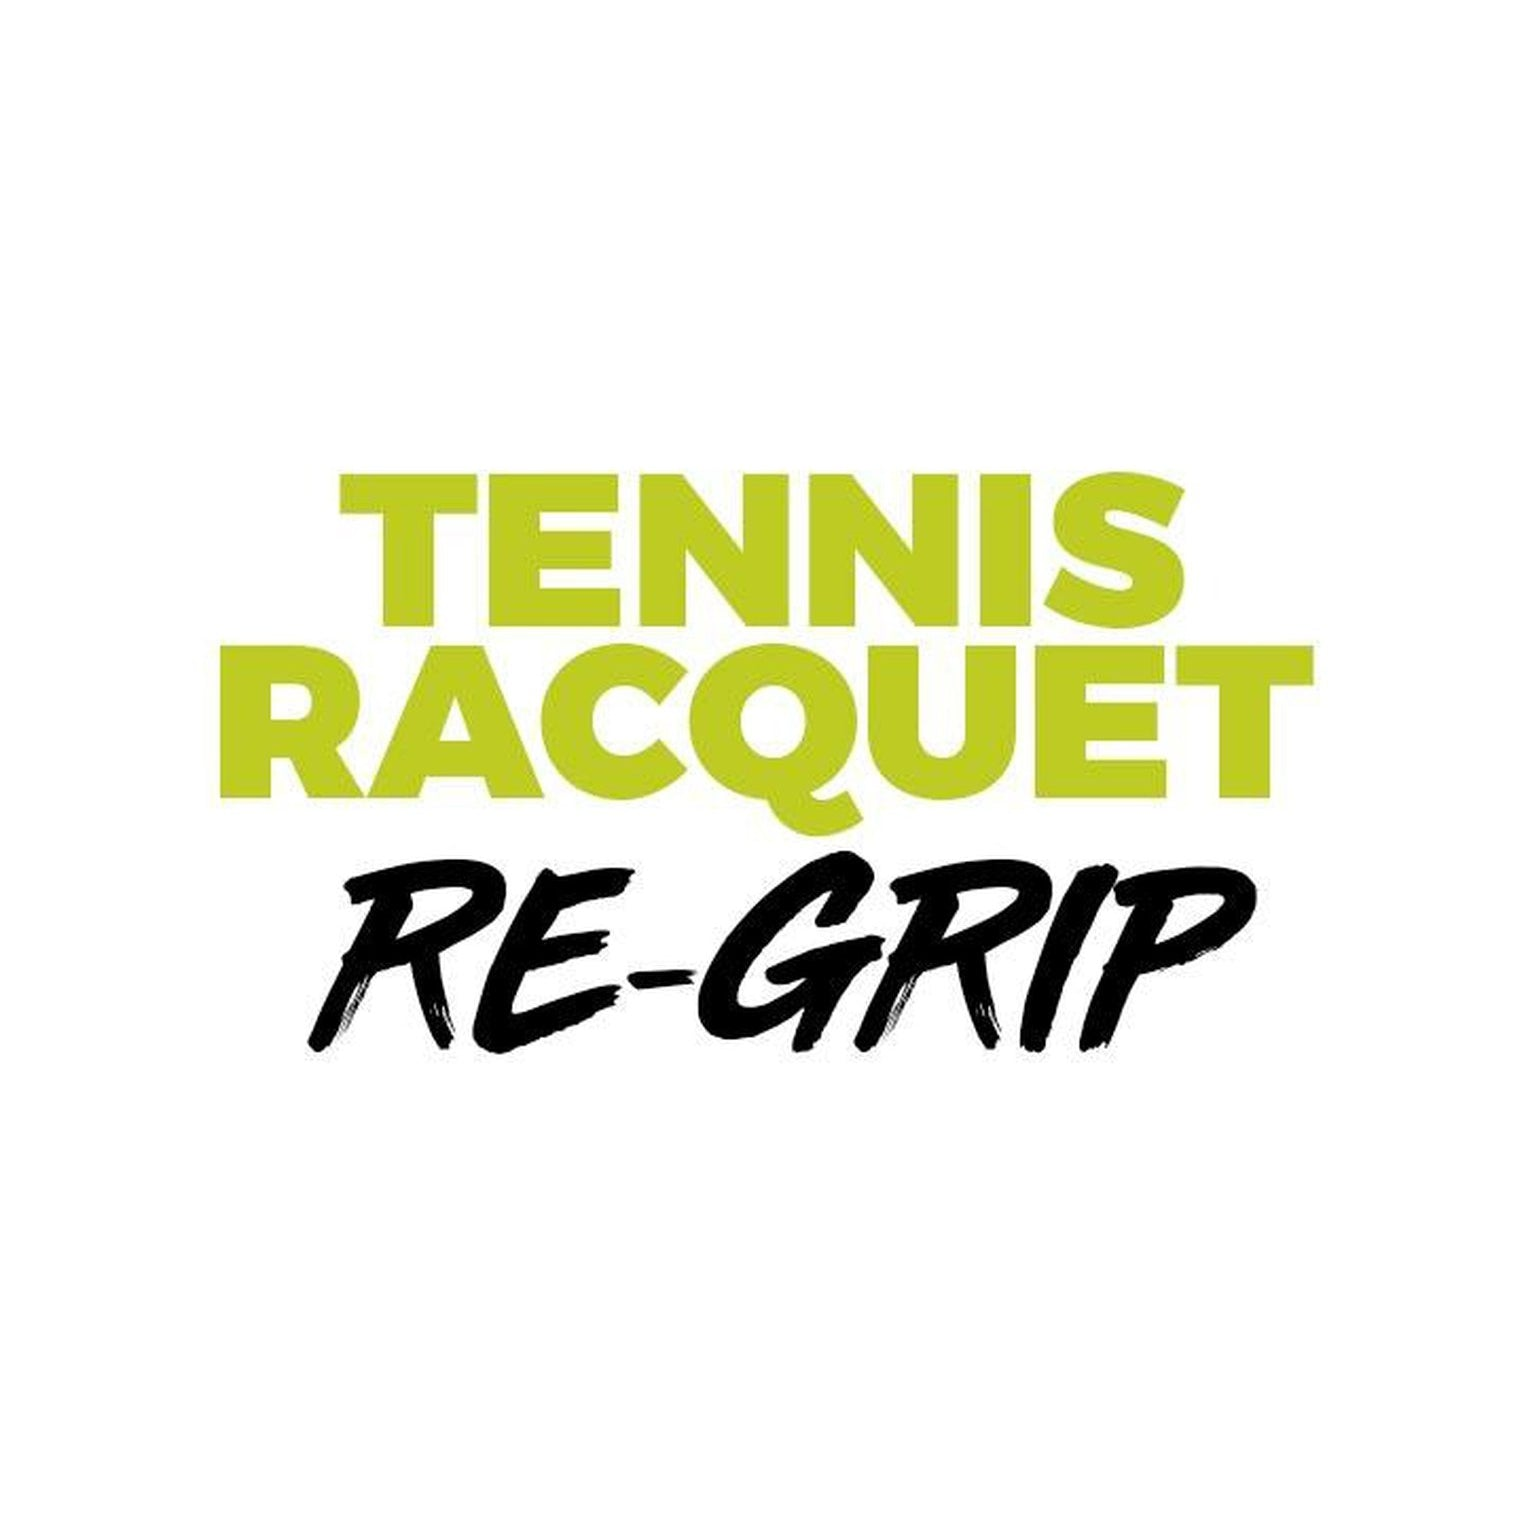 Racquet Re-Gripping